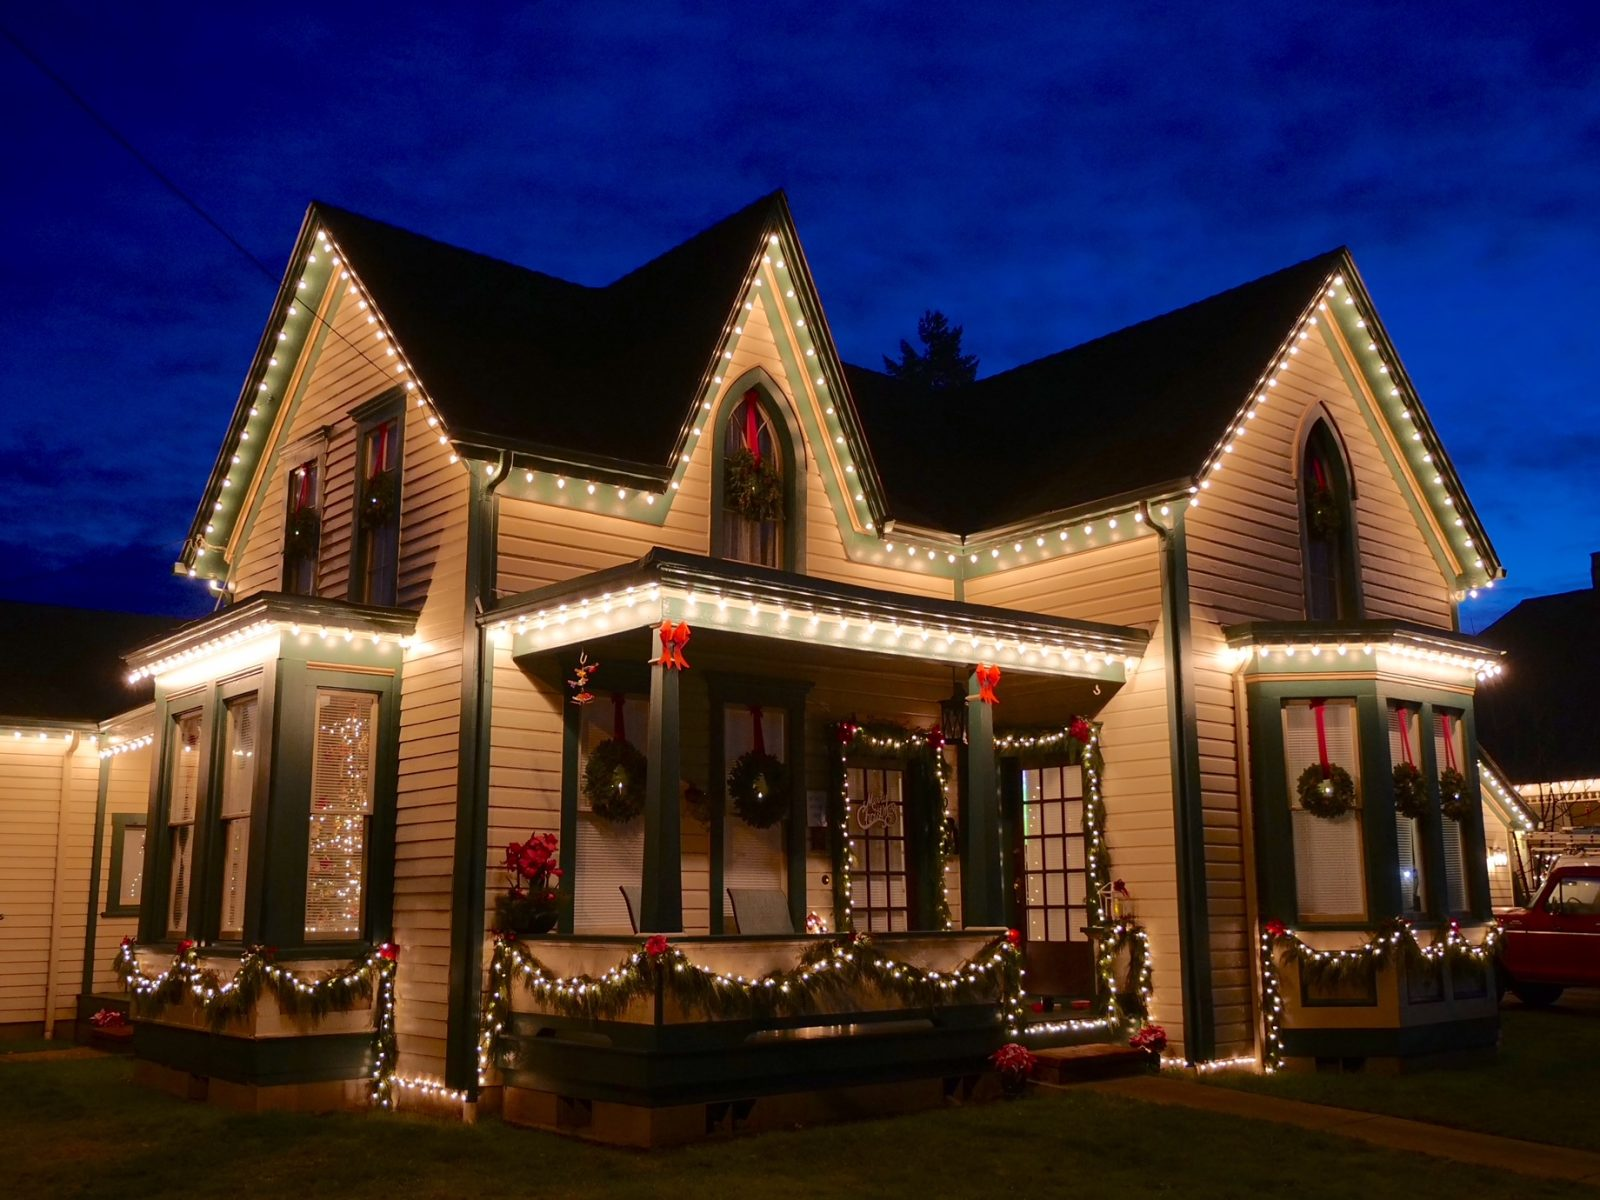 Historic home decorated for the holidays